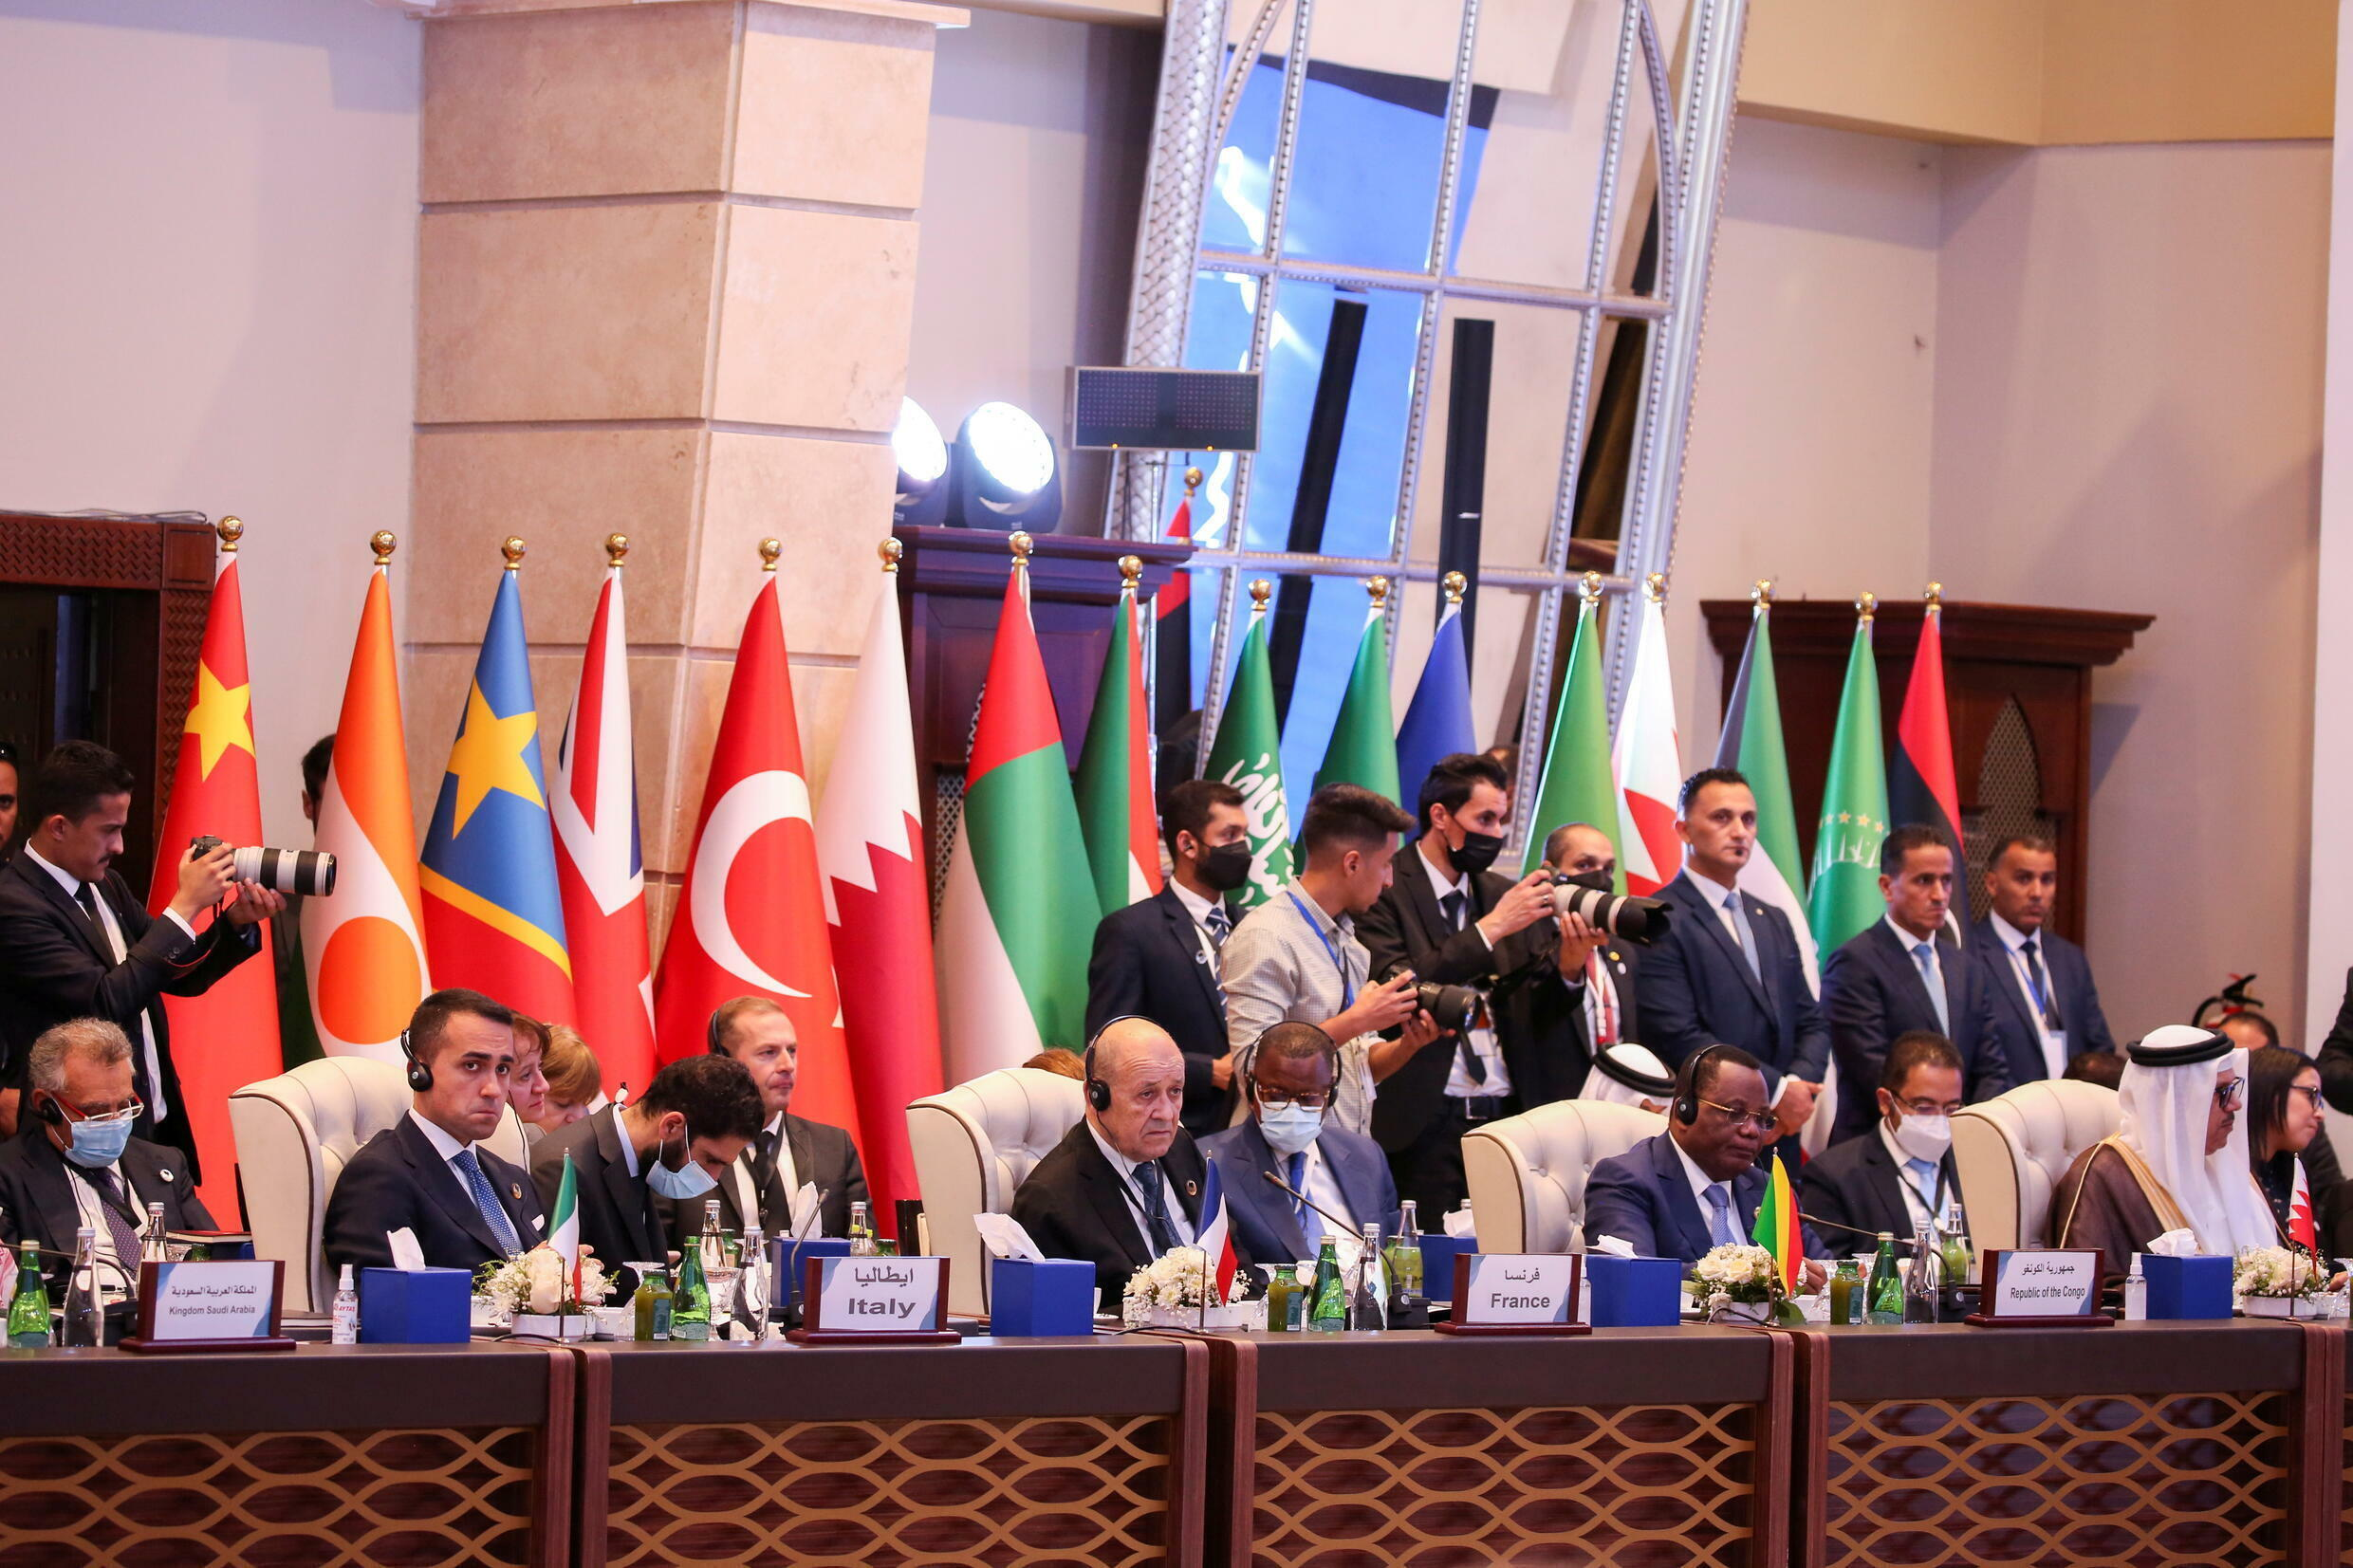 2021-10-21T123433Z_1283188451_RC2BEQ9YX5PT_RTRMADP_3_LIBYA-SECURITY-CONFERENCE